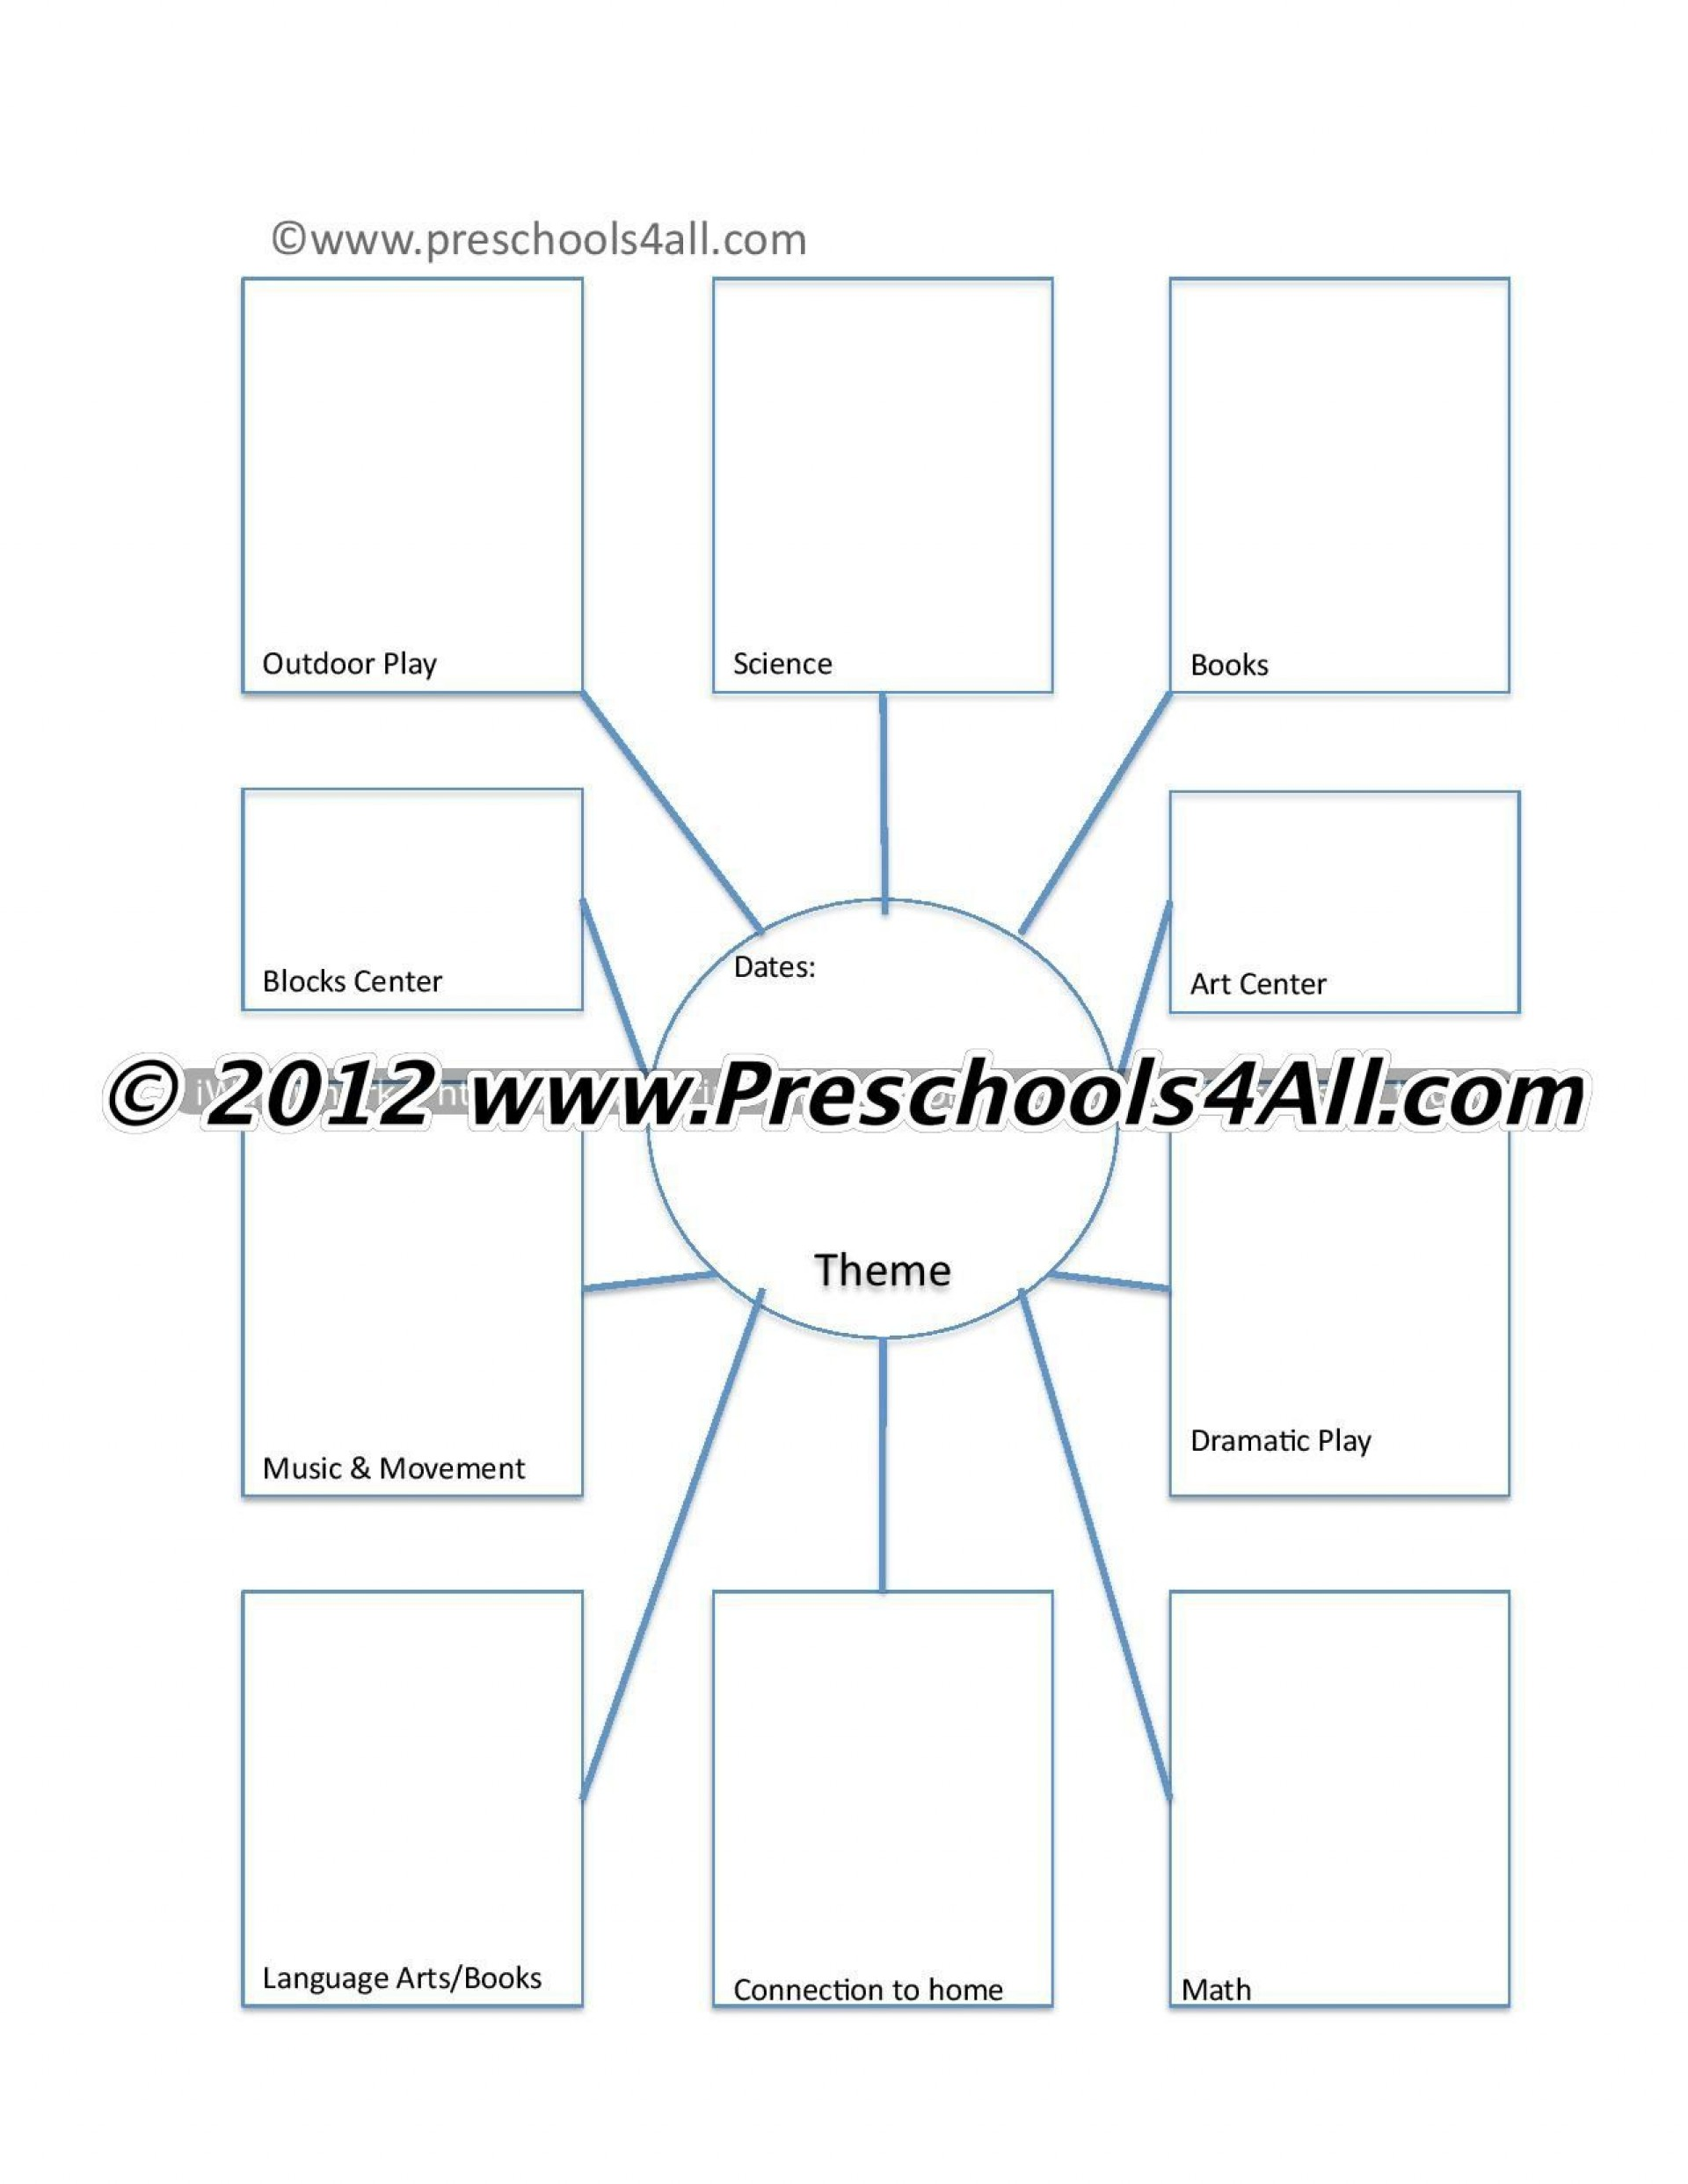 009 Archaicawful Pre K Lesson Plan Template Printable Inspiration  Pre-k1920